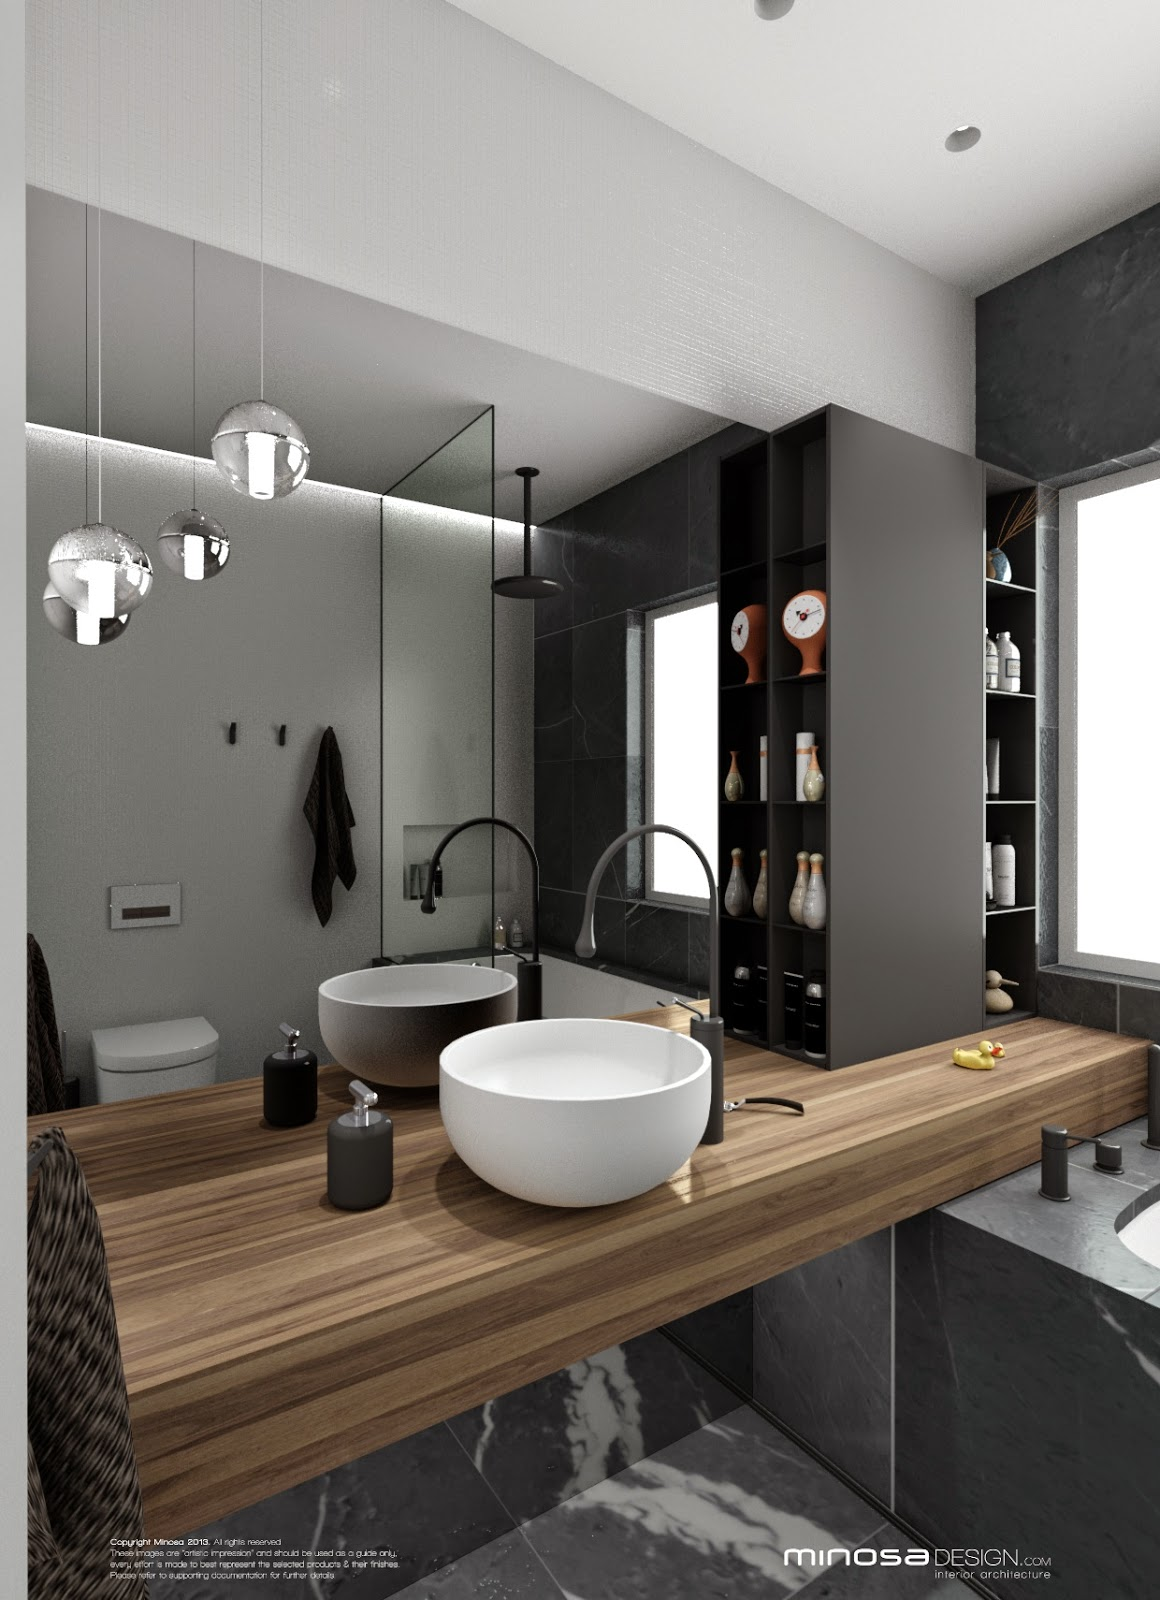 Minosa bathroom design small space feels large for Small lavatory designs